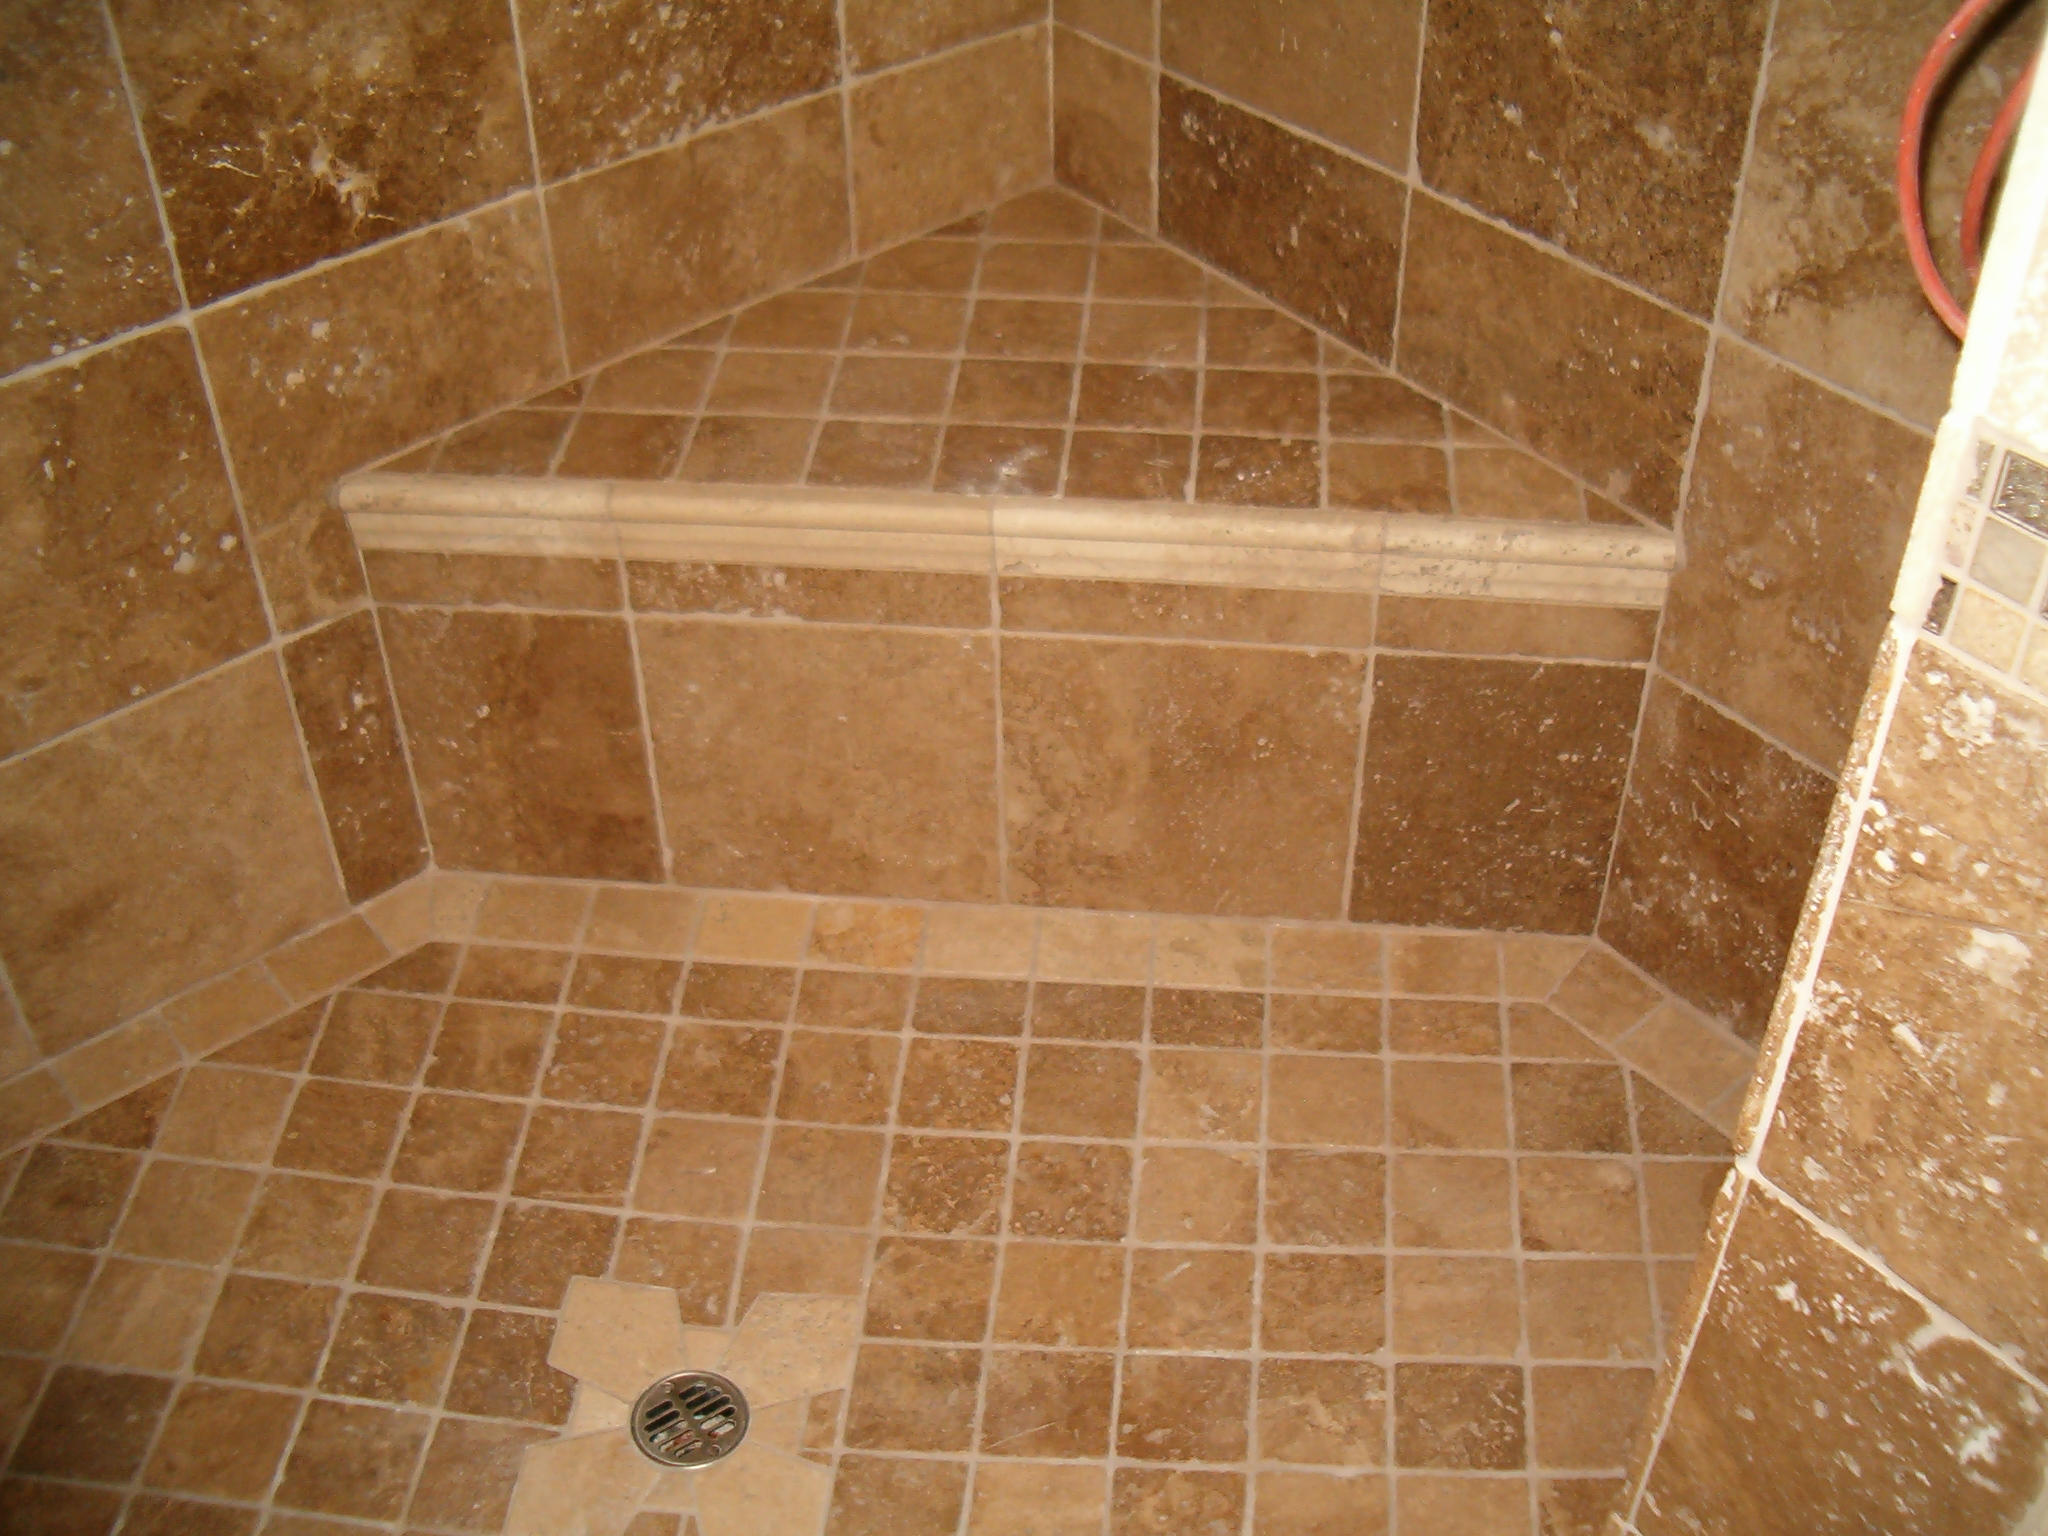 Shower anatomy for Bathroom tile designs ideas